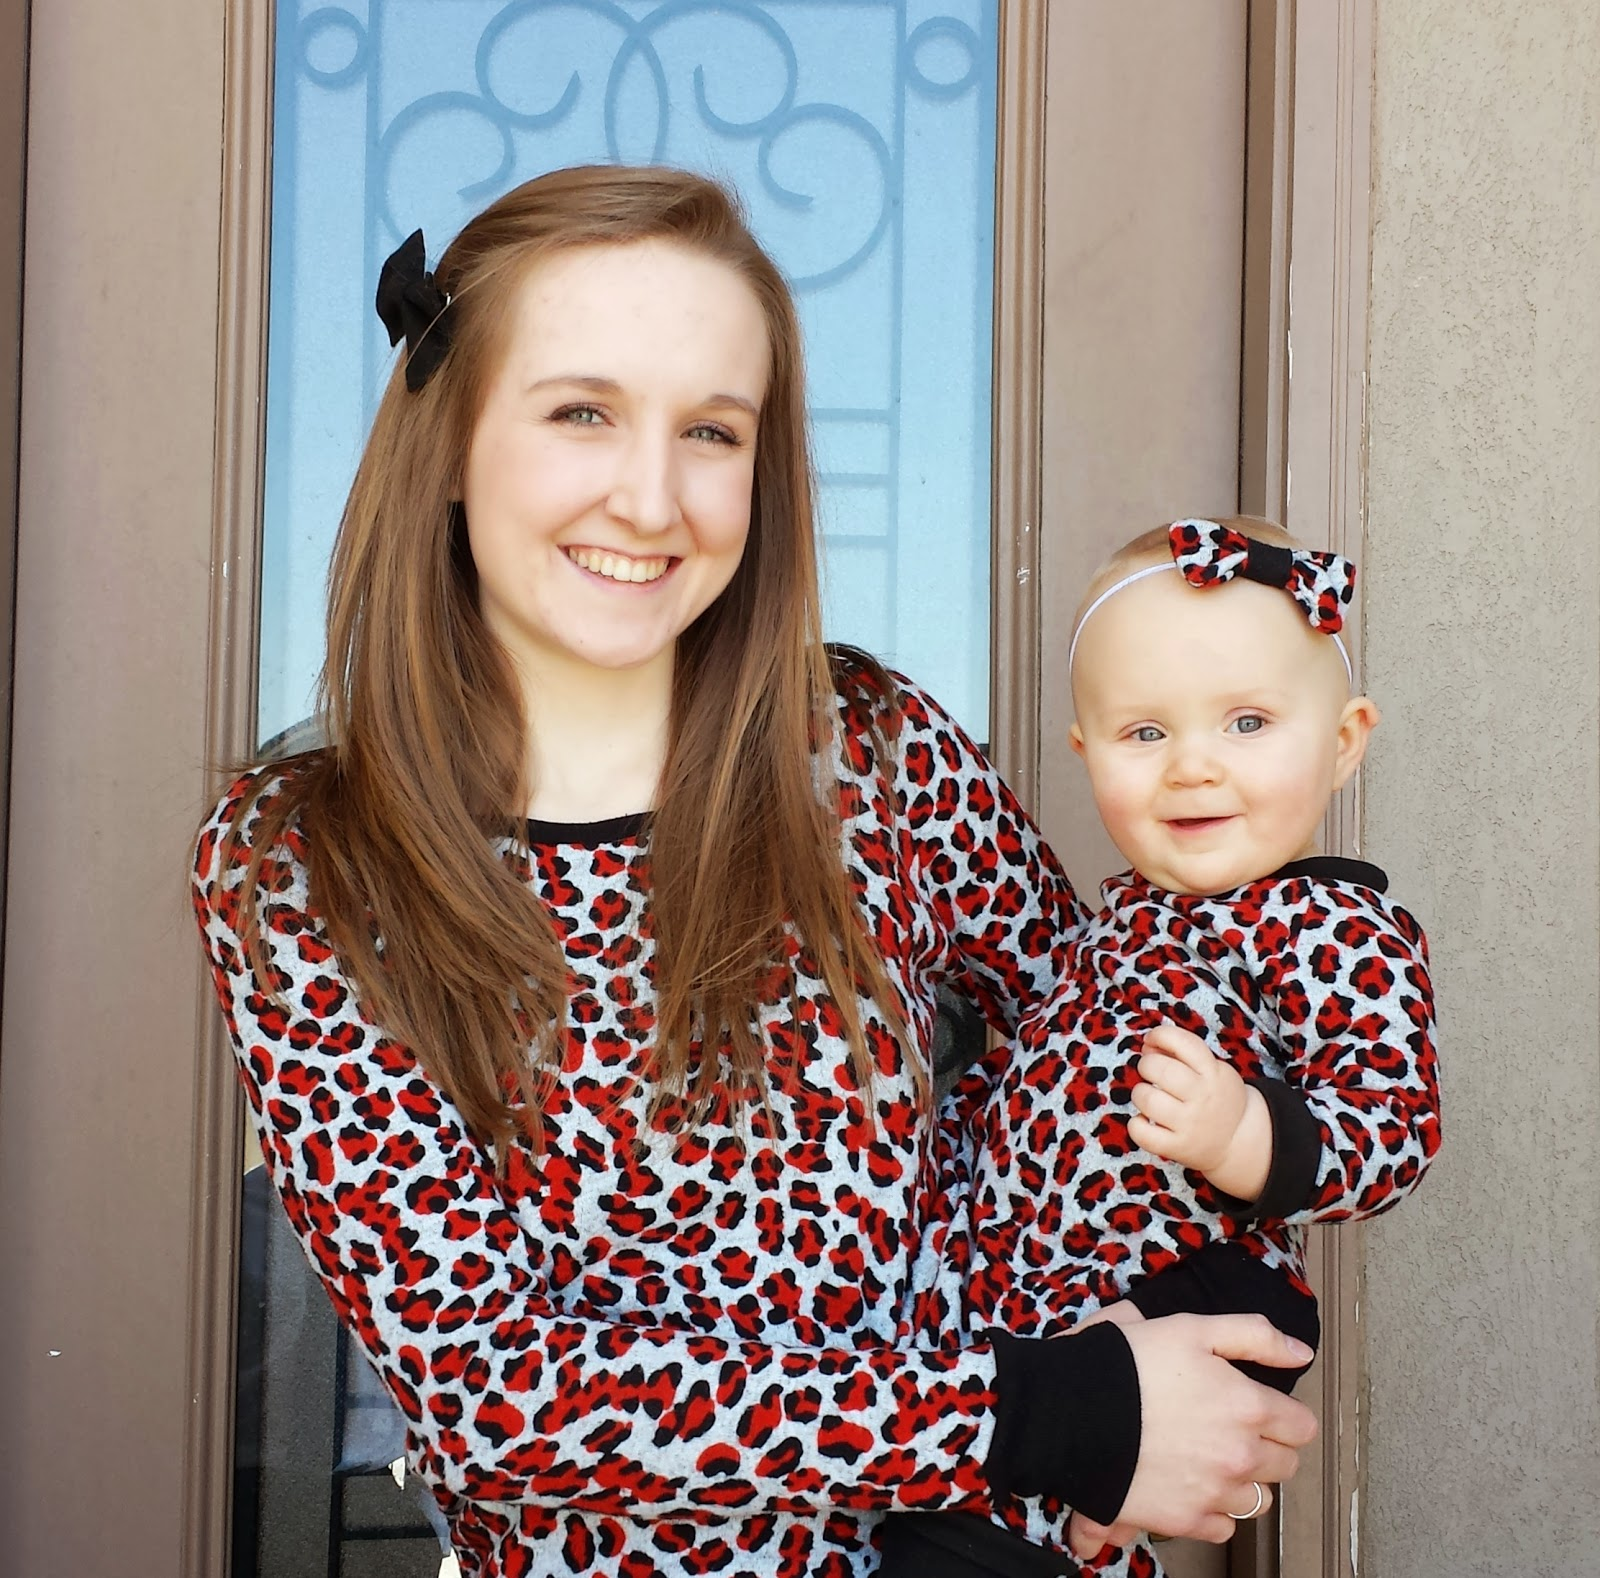 mommy and me matching shirts, matching shirts, mommy and baby, baby girl, leopard print shirts, diy shirts